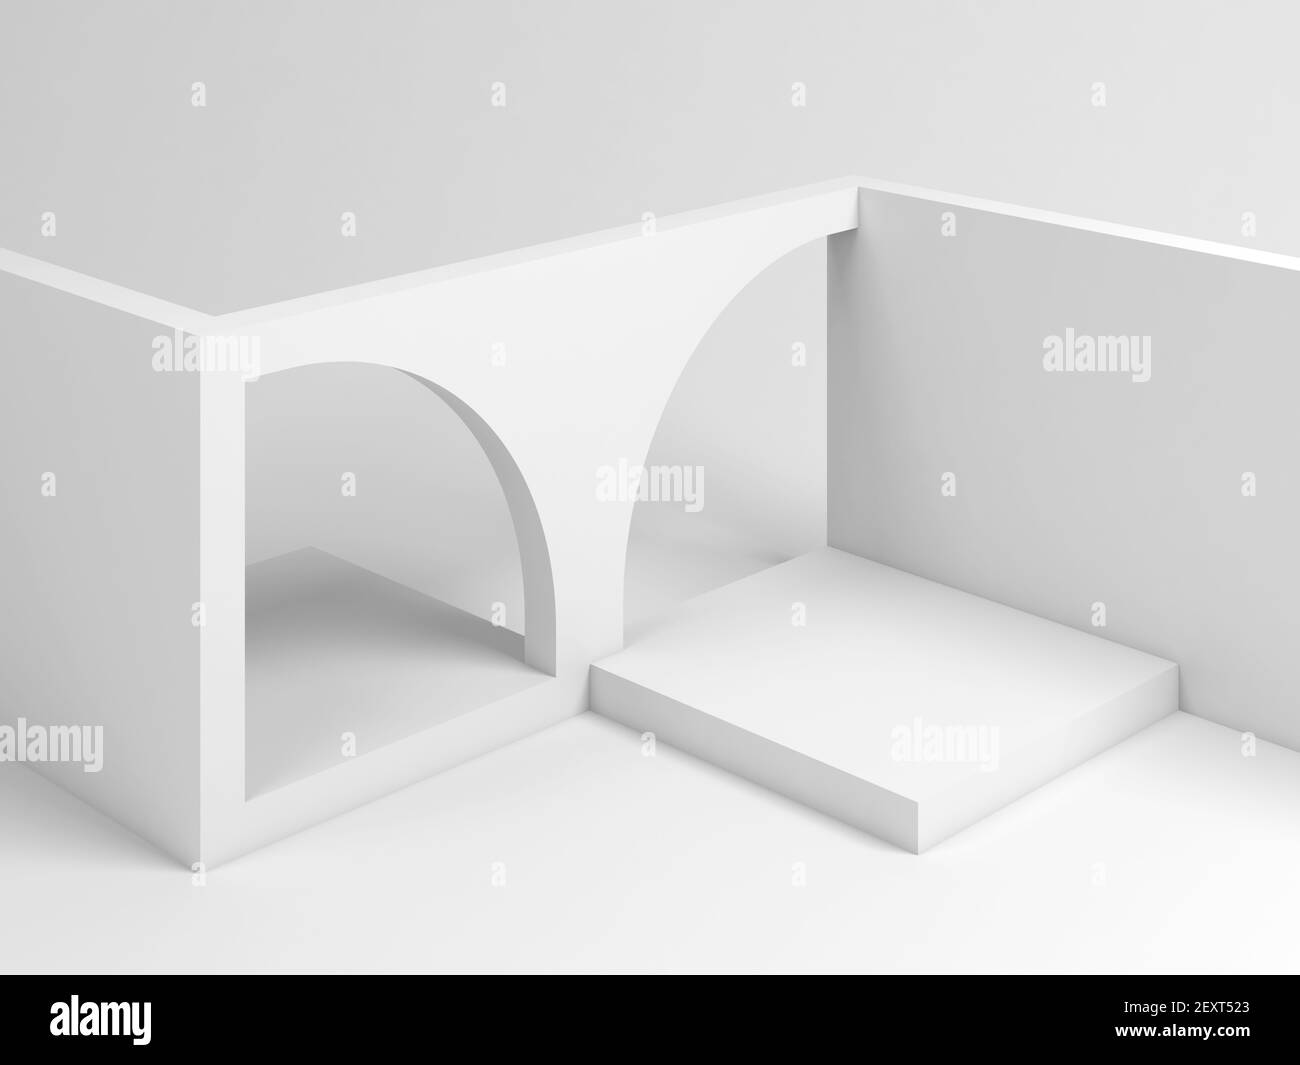 Abstract white architectural installation of an empty cube blocks with arches, 3d rendering illustration Stock Photo